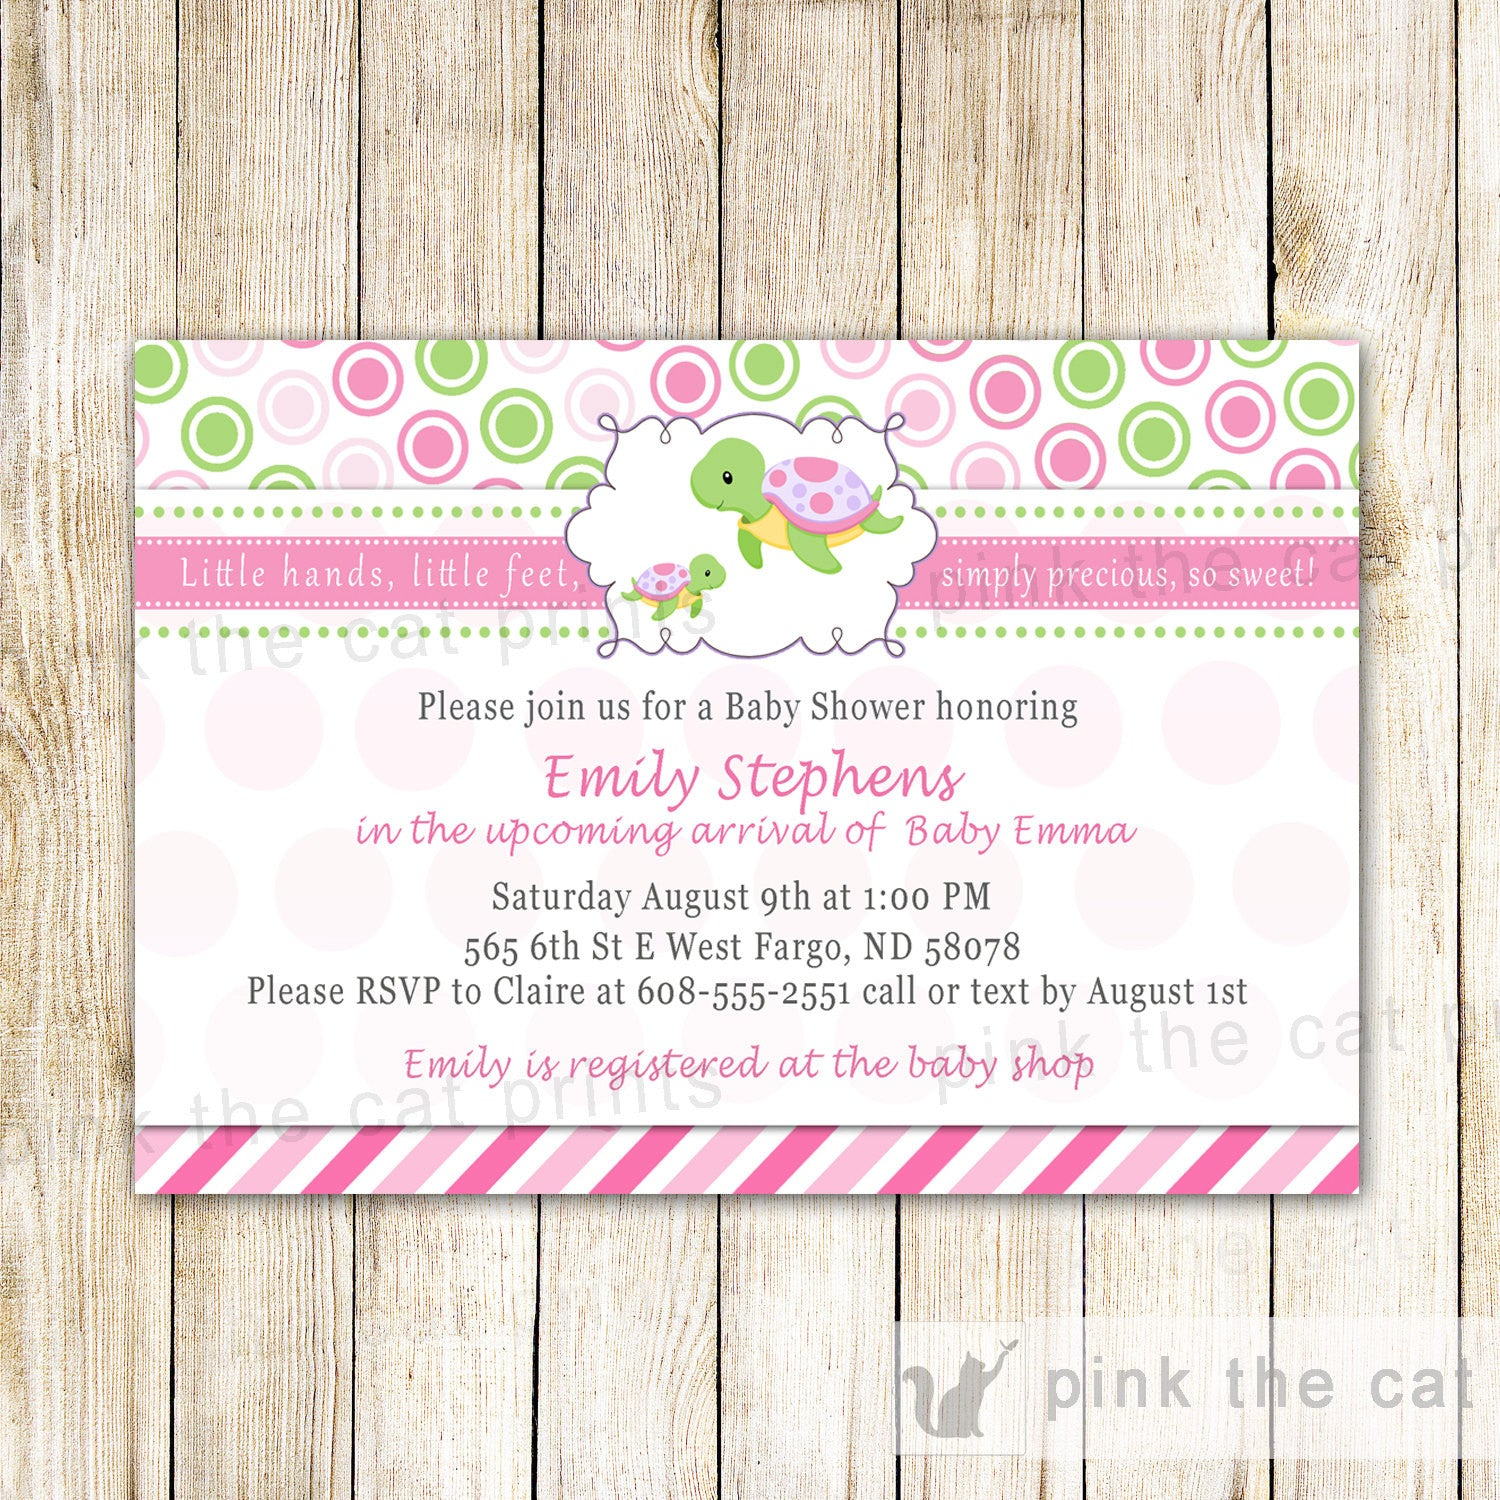 Turtle Baby Girl Shower Invitation Pink Green – Pink The Cat